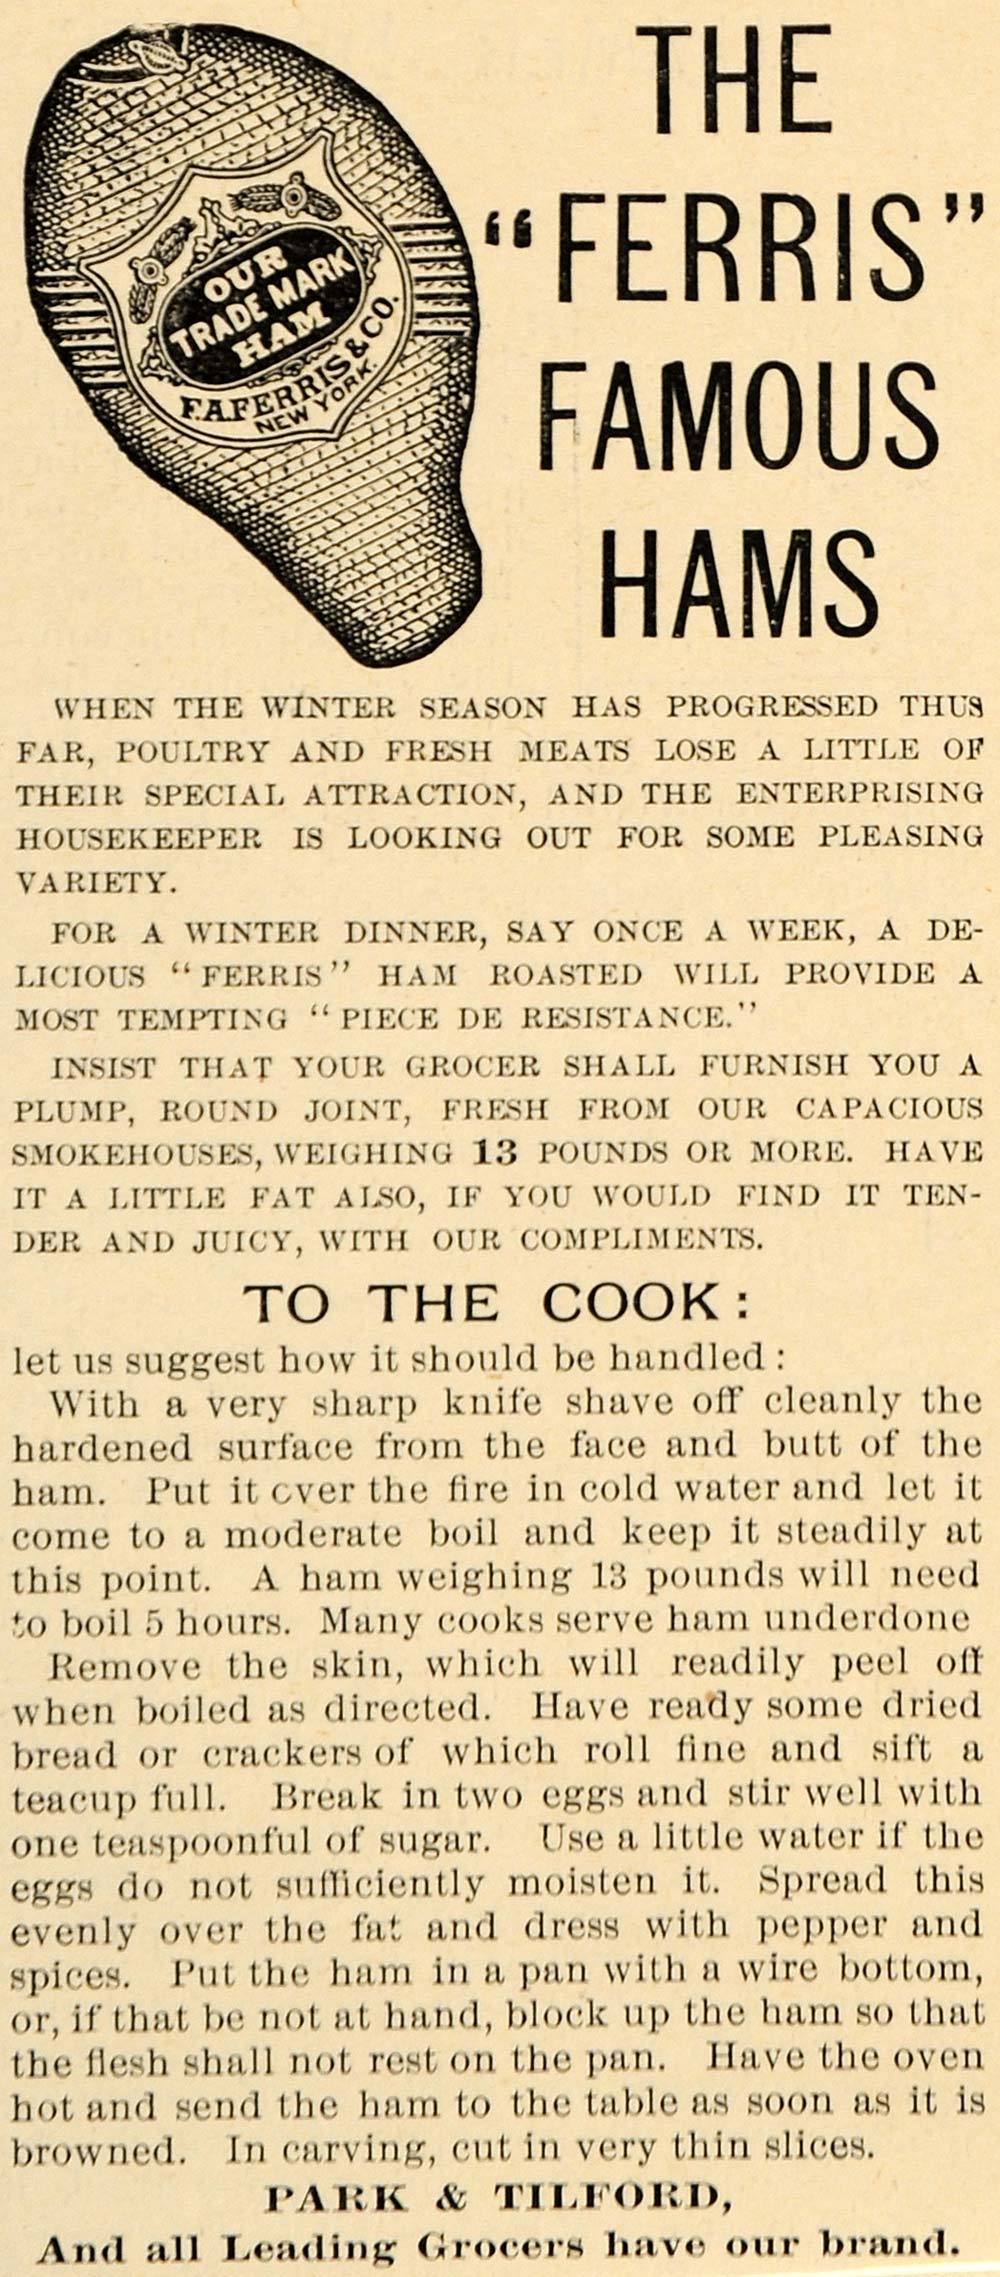 1892 Ad Park & Tilford Ferris Famous Hams Meat Food - ORIGINAL ADVERTISING LHJ4